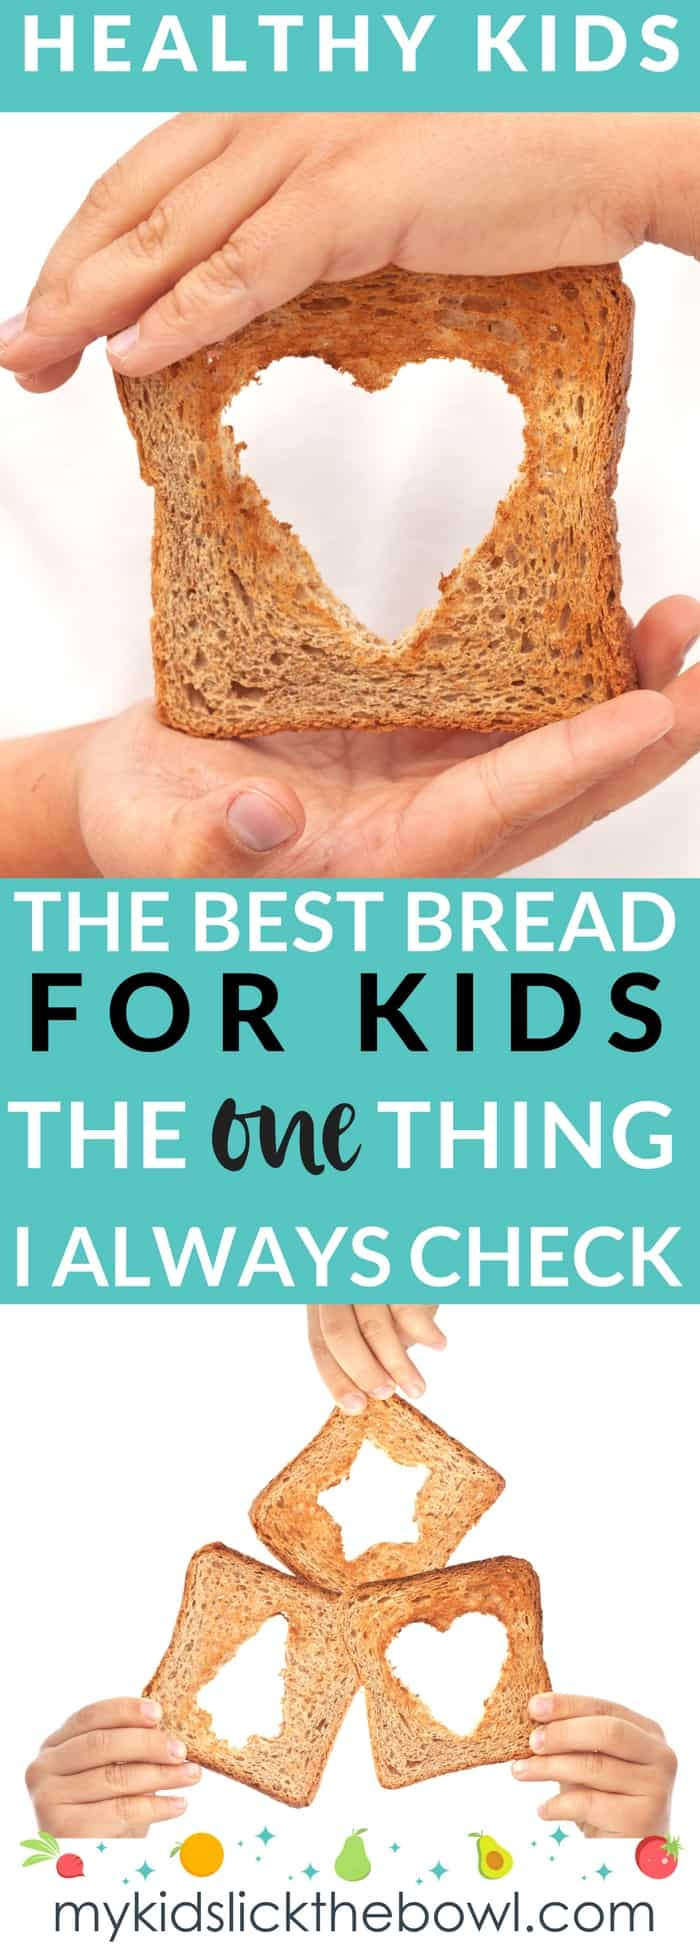 Whats better than sliced bread? The one thing I always check on the label when choosing good bread for my children